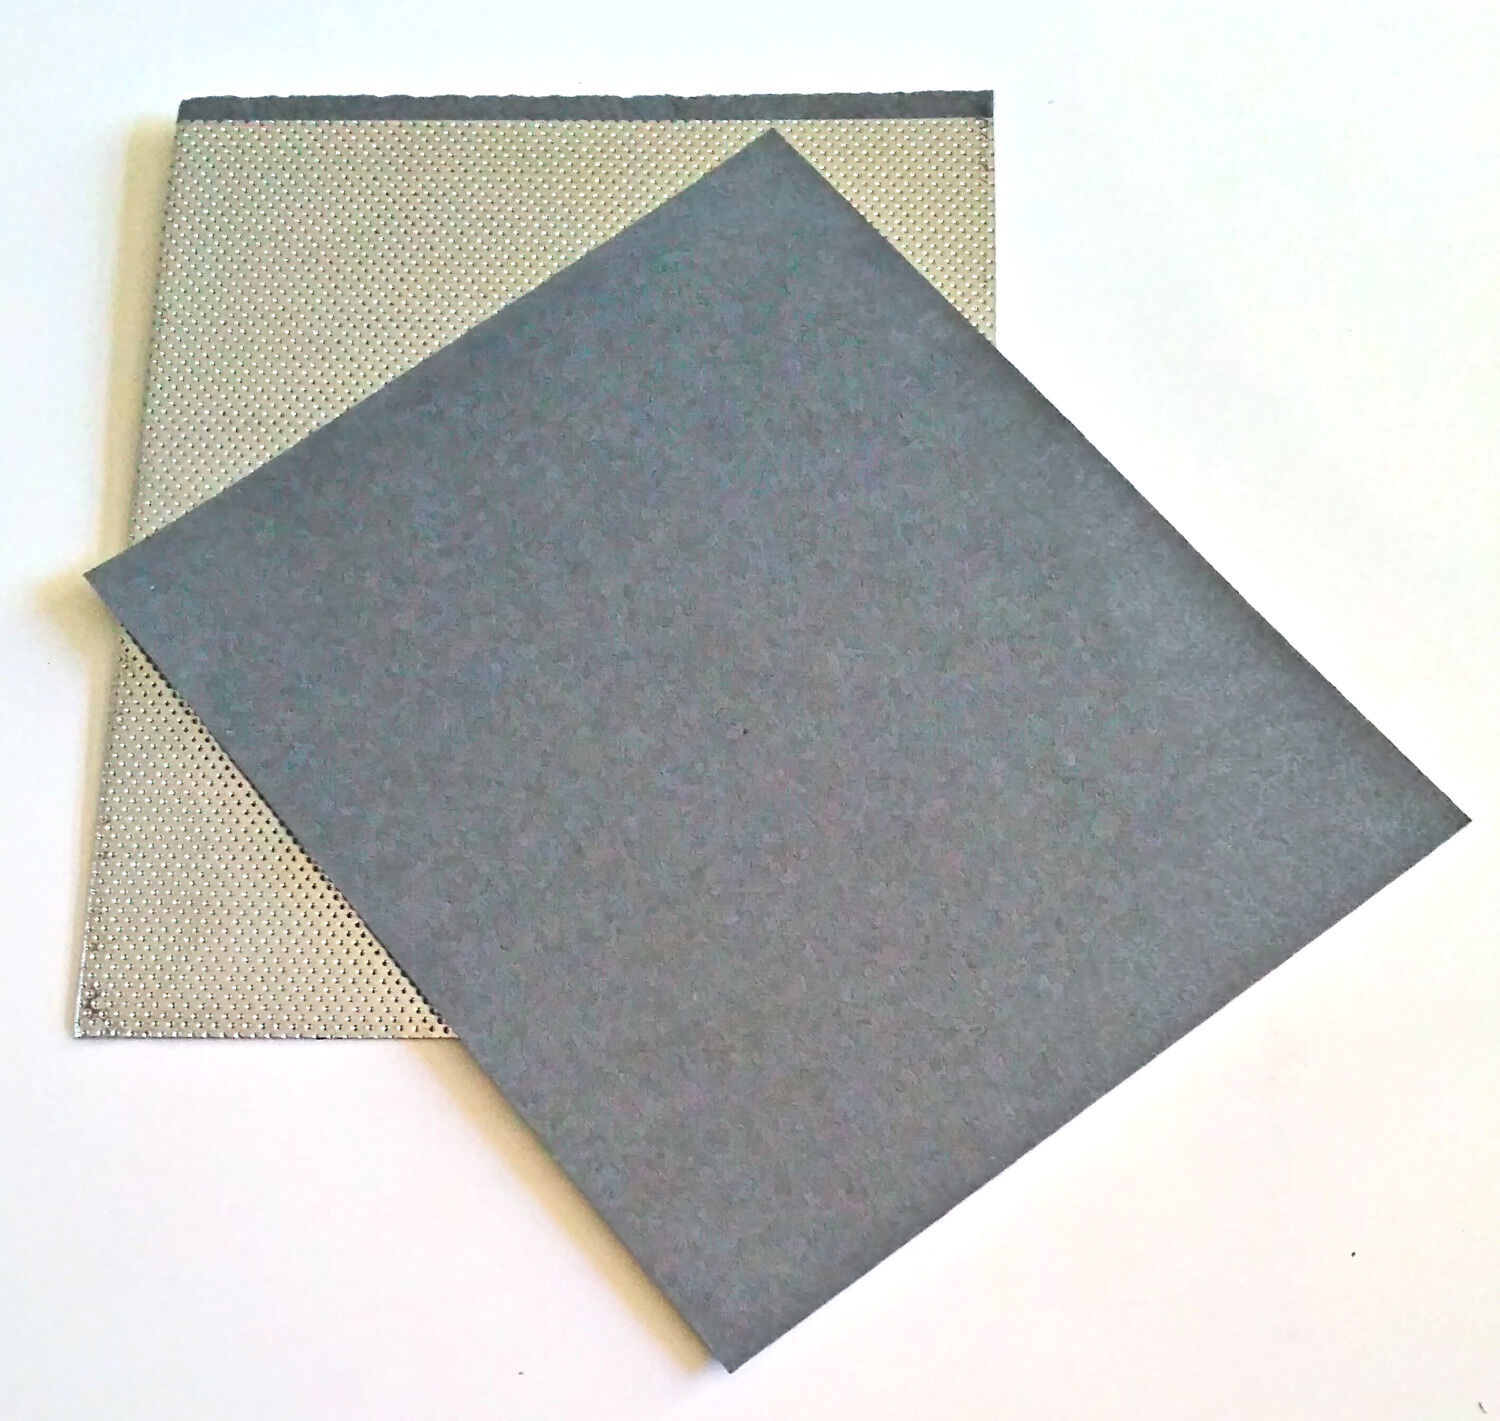 Exhaust Gasket Material Make Your Own Sheet Metal Gasket Material 250mm x 300mm